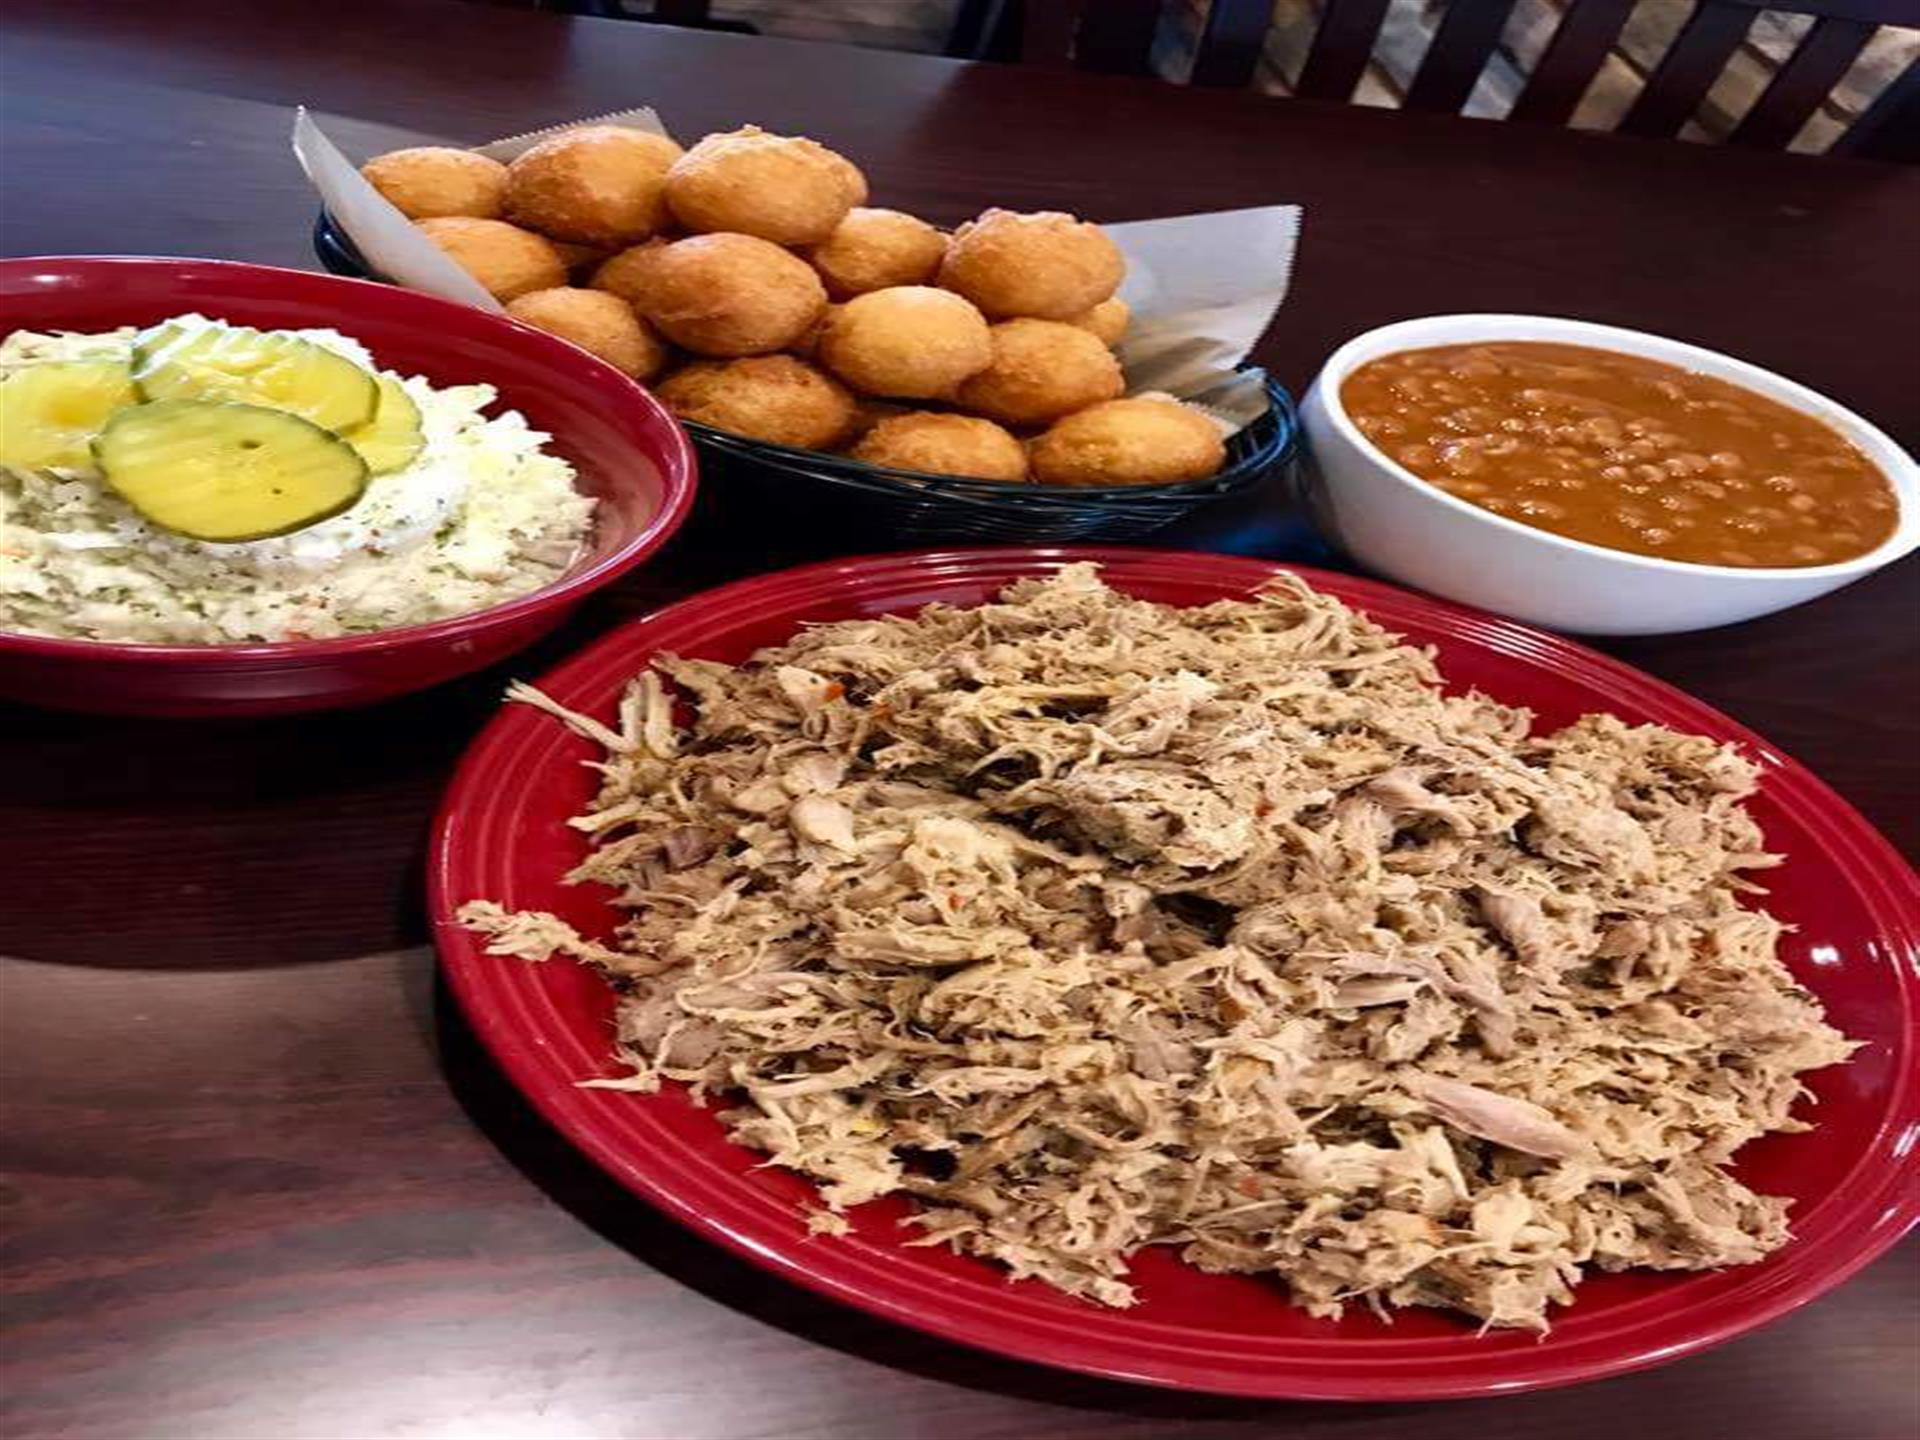 shredded chicken served with coleslaw, hush puppies and baked beans